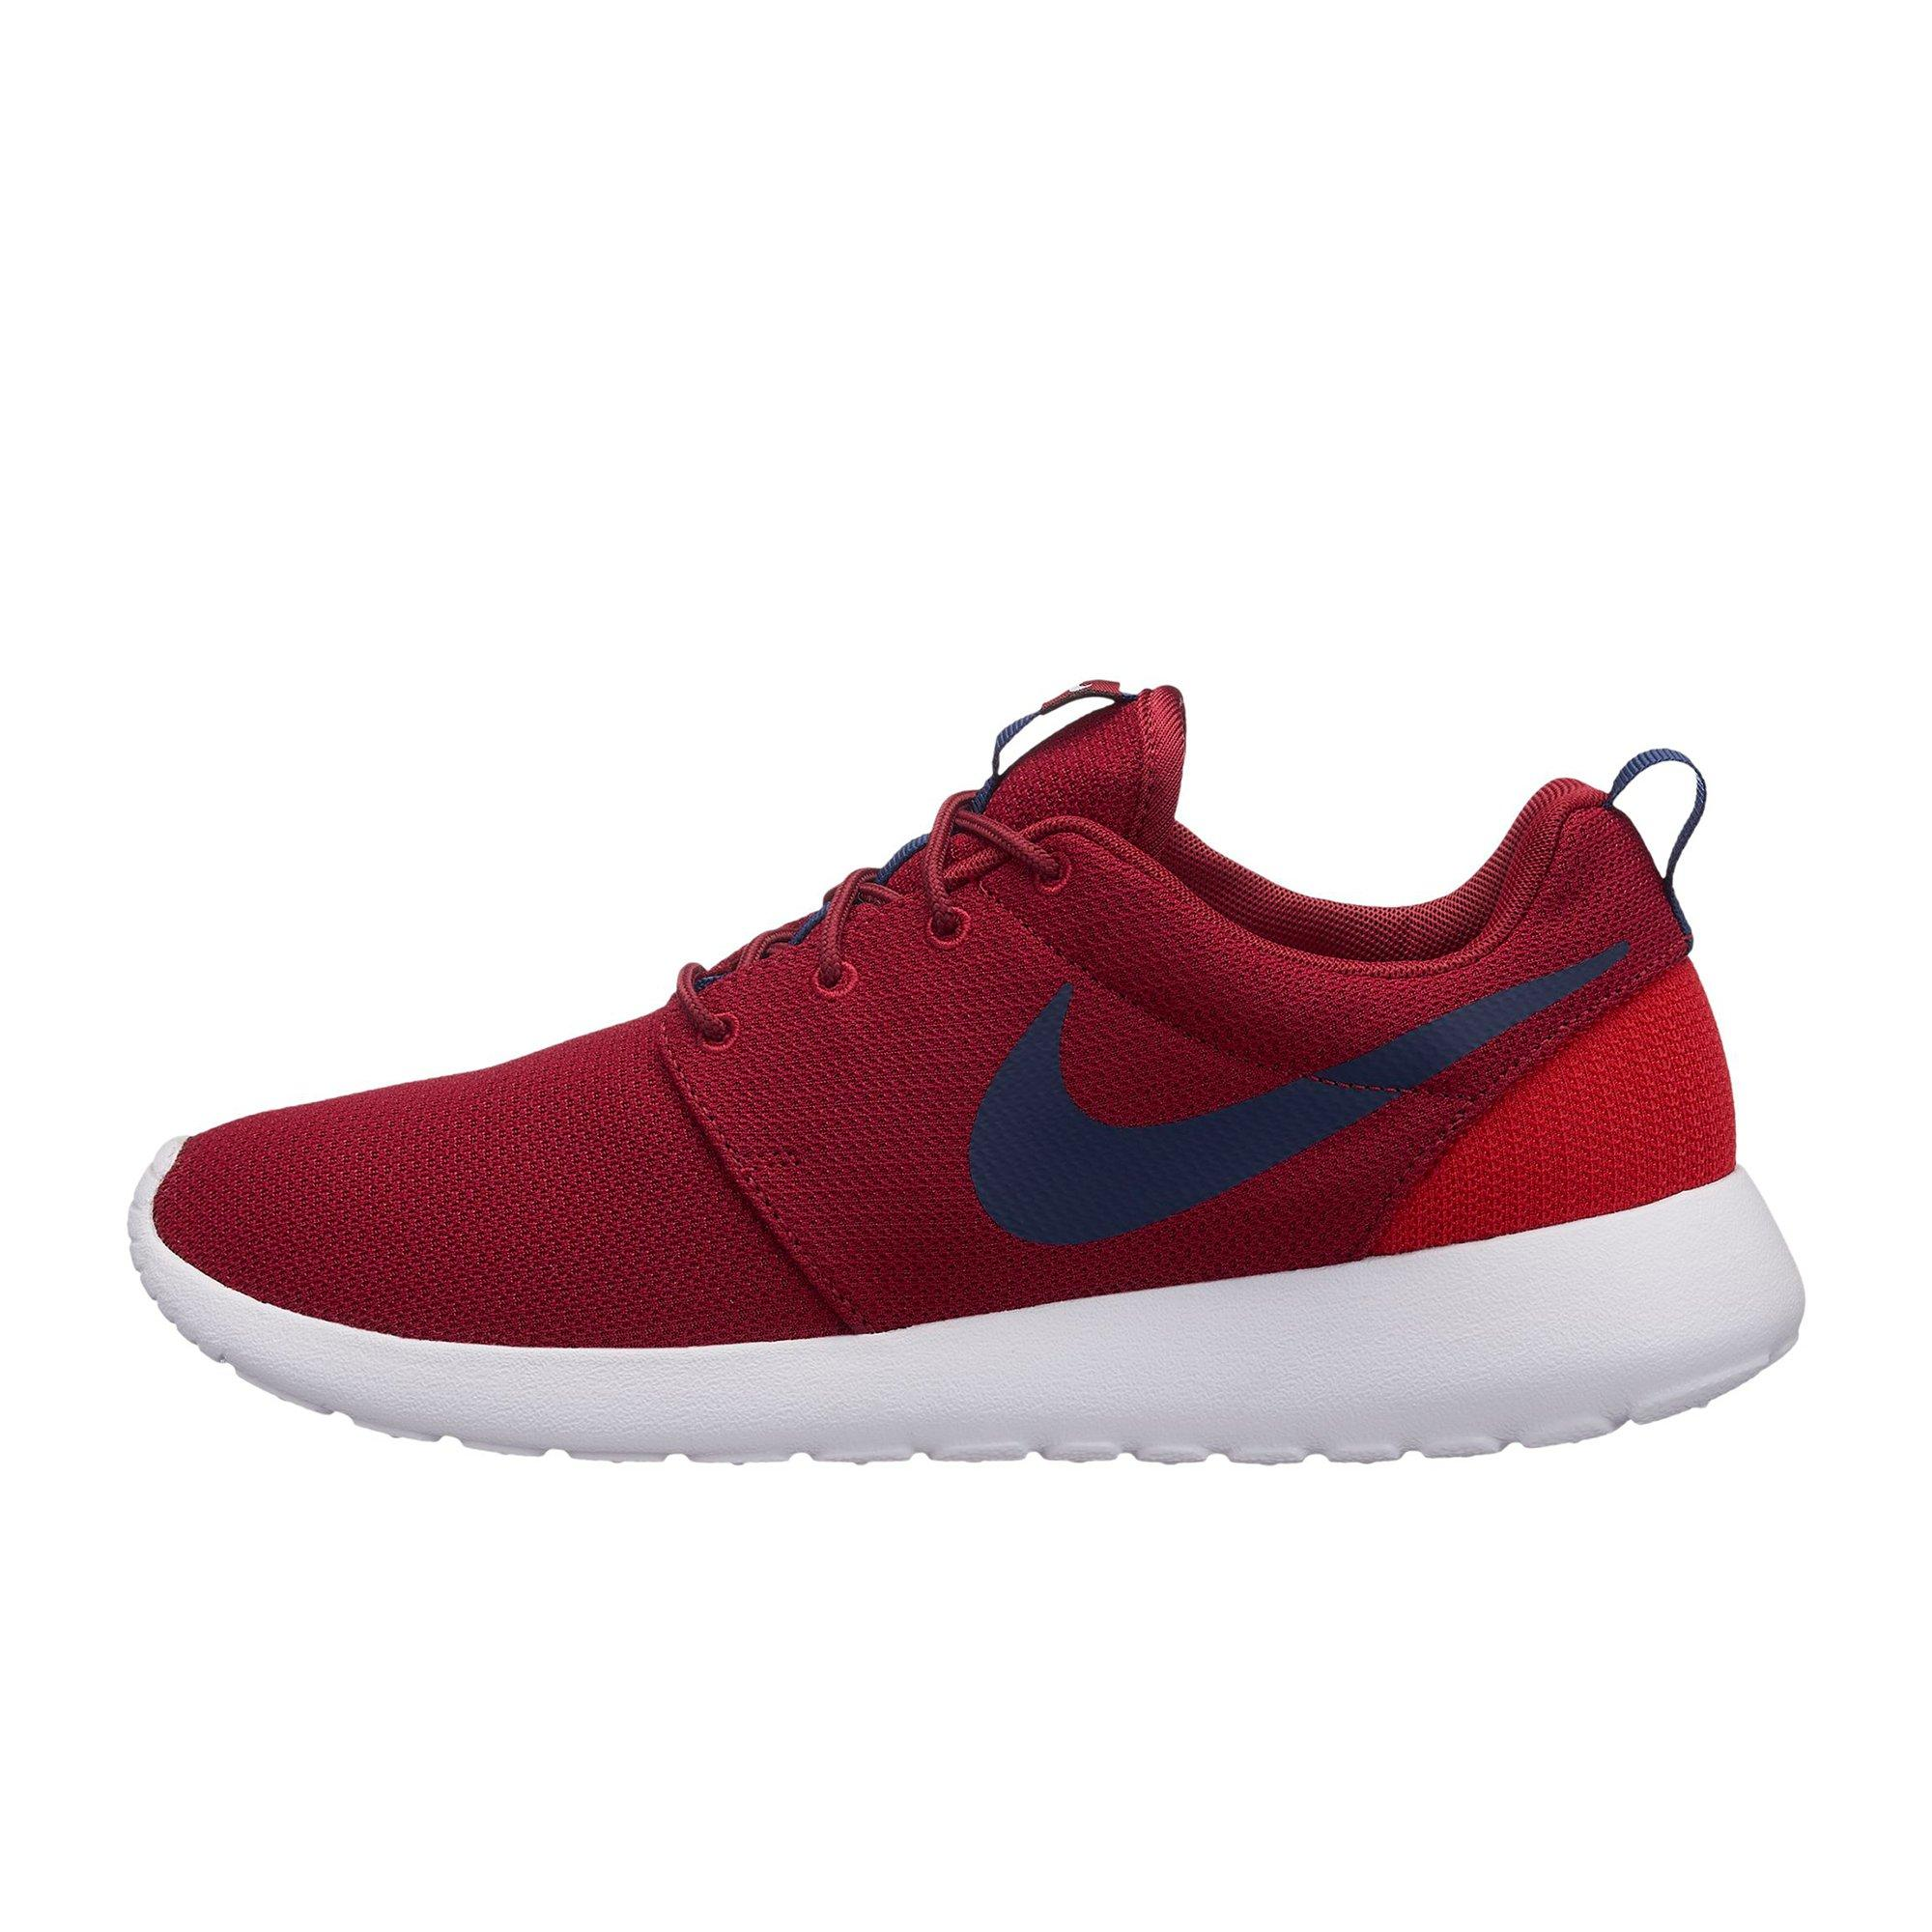 best website 19017 67e1f usa nike roshe dicks 507a9 f0ef8